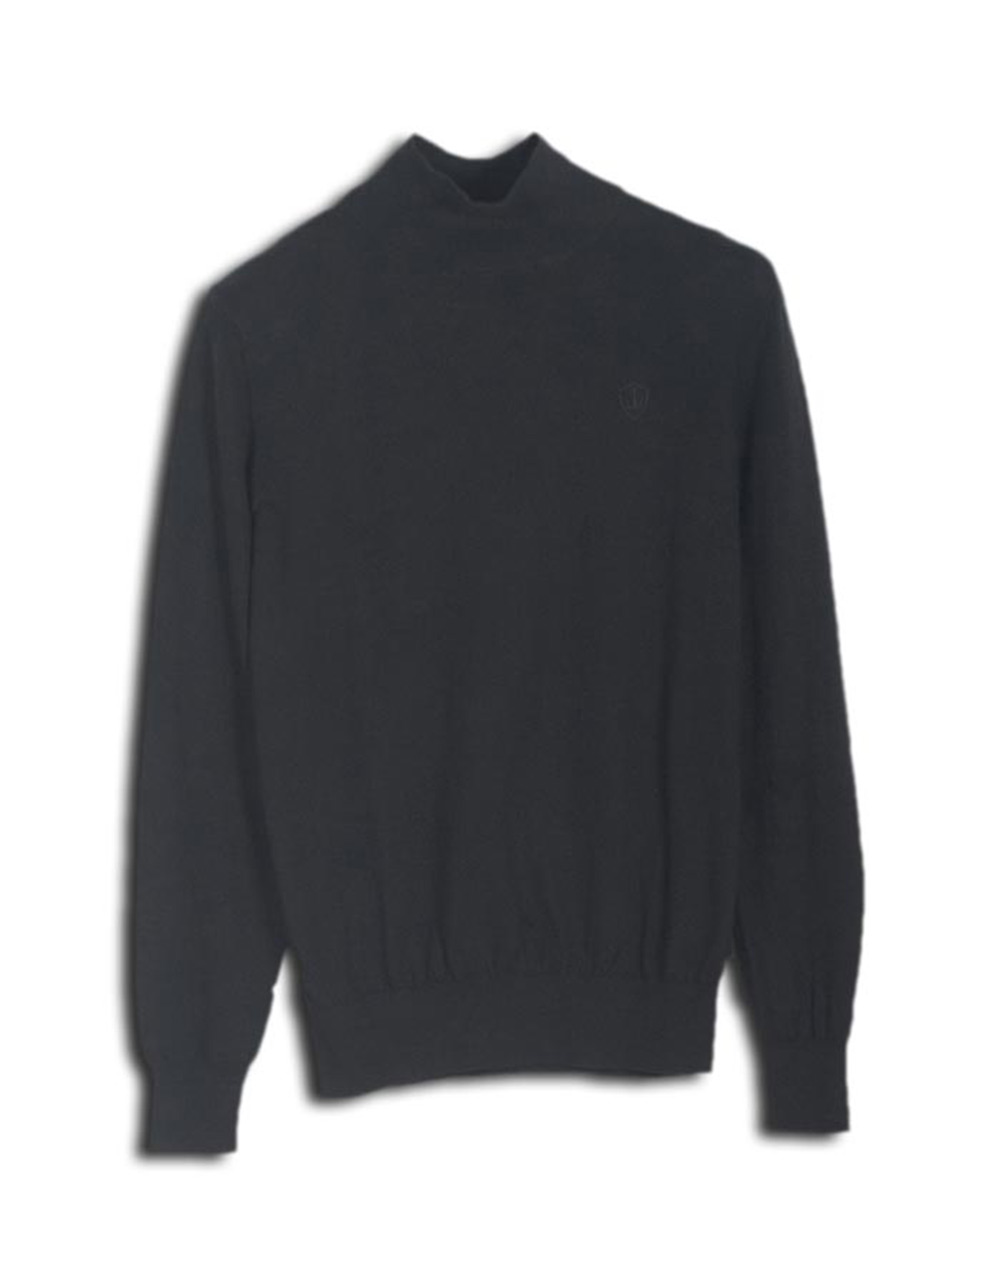 Black turtleneck jersey - Backside